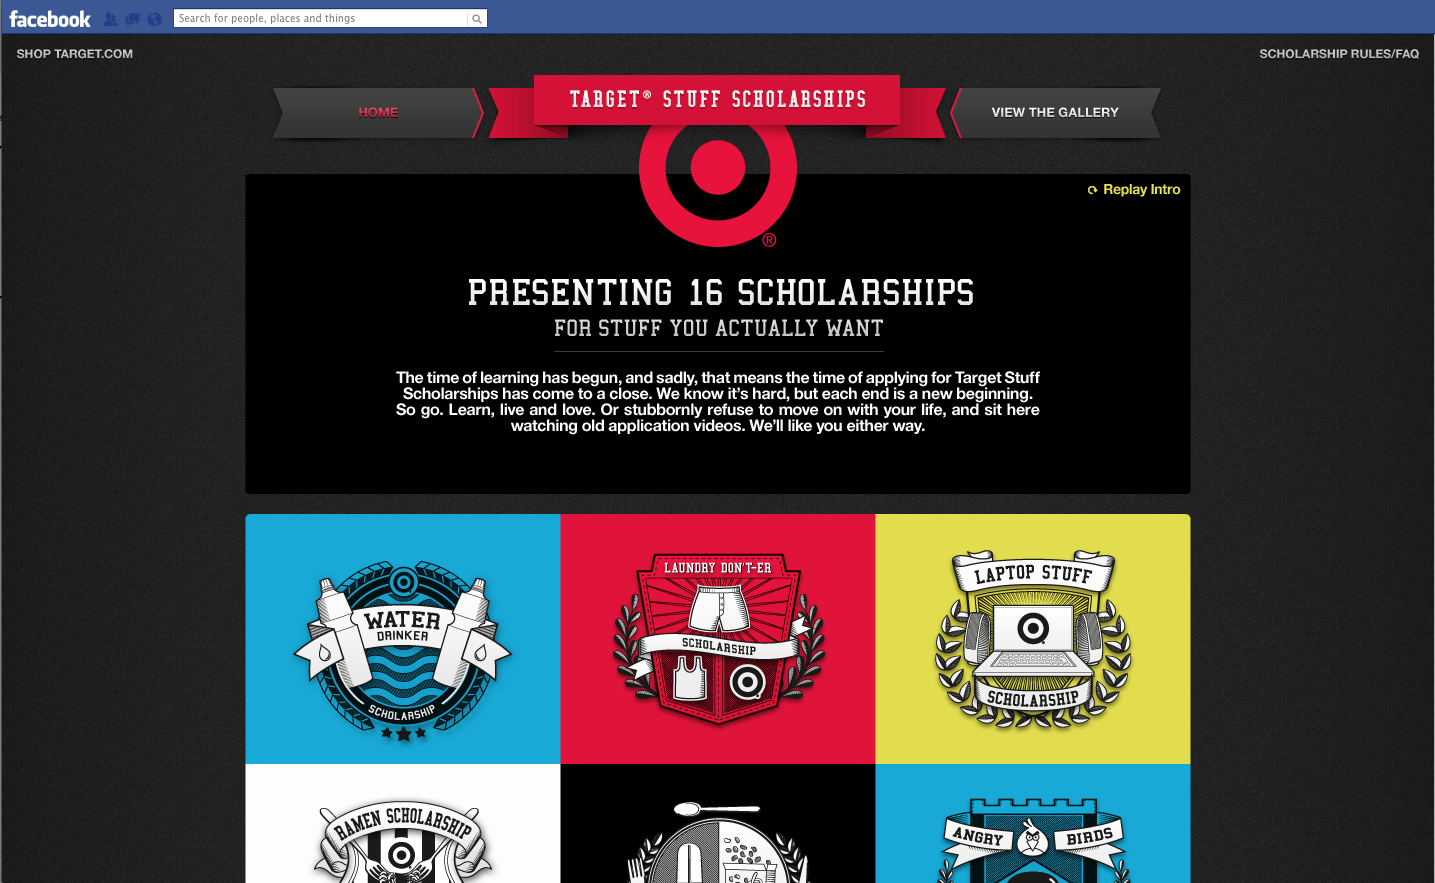 Homepage of the experience. User is greeted with an introductory video and selects the scholarship that they'd like to apply to from here.